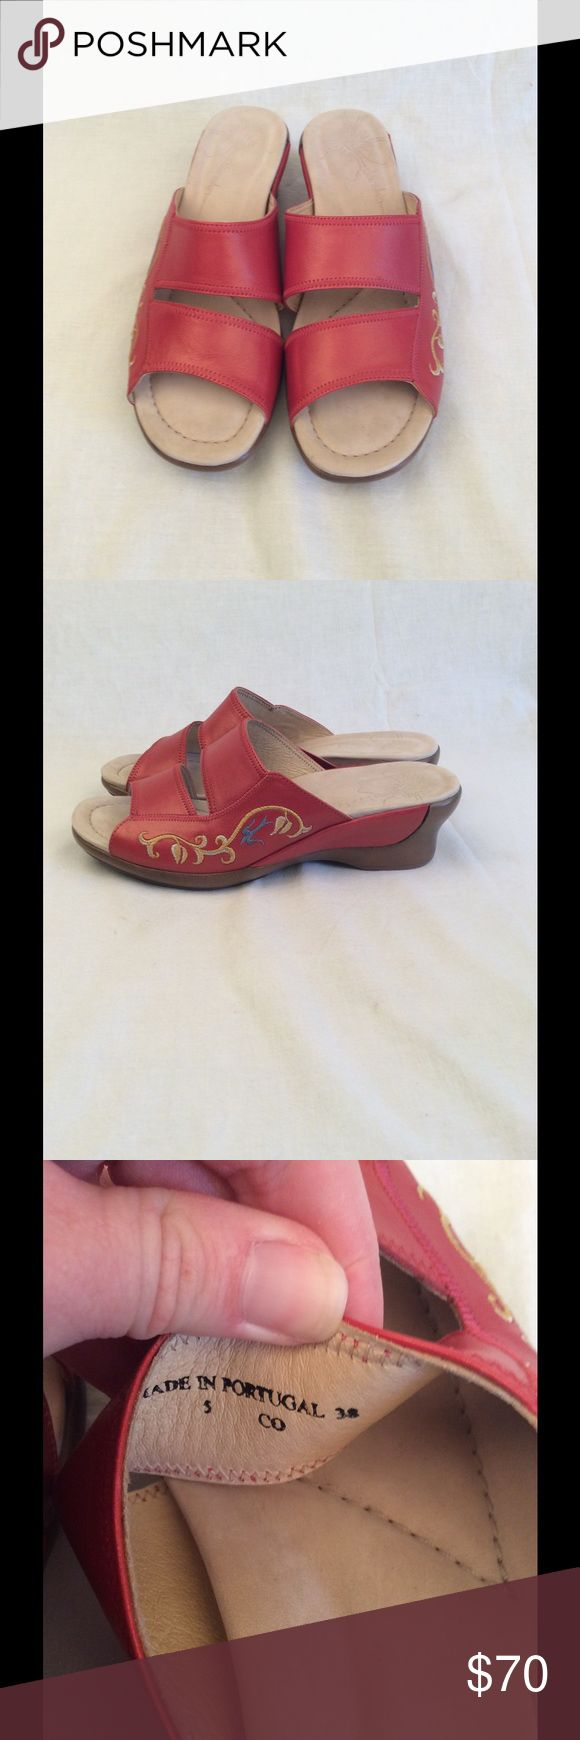 "SALEDanskos New size 38 no box dansko sandals. Red upper leather, cushiony inside sole. Has cute design on outside of both shoes on the side. Comes from a smoke free home. Slip on sandals with small 1.5"" heel to them. #danskos #redleather Dansko Shoes Sandals"